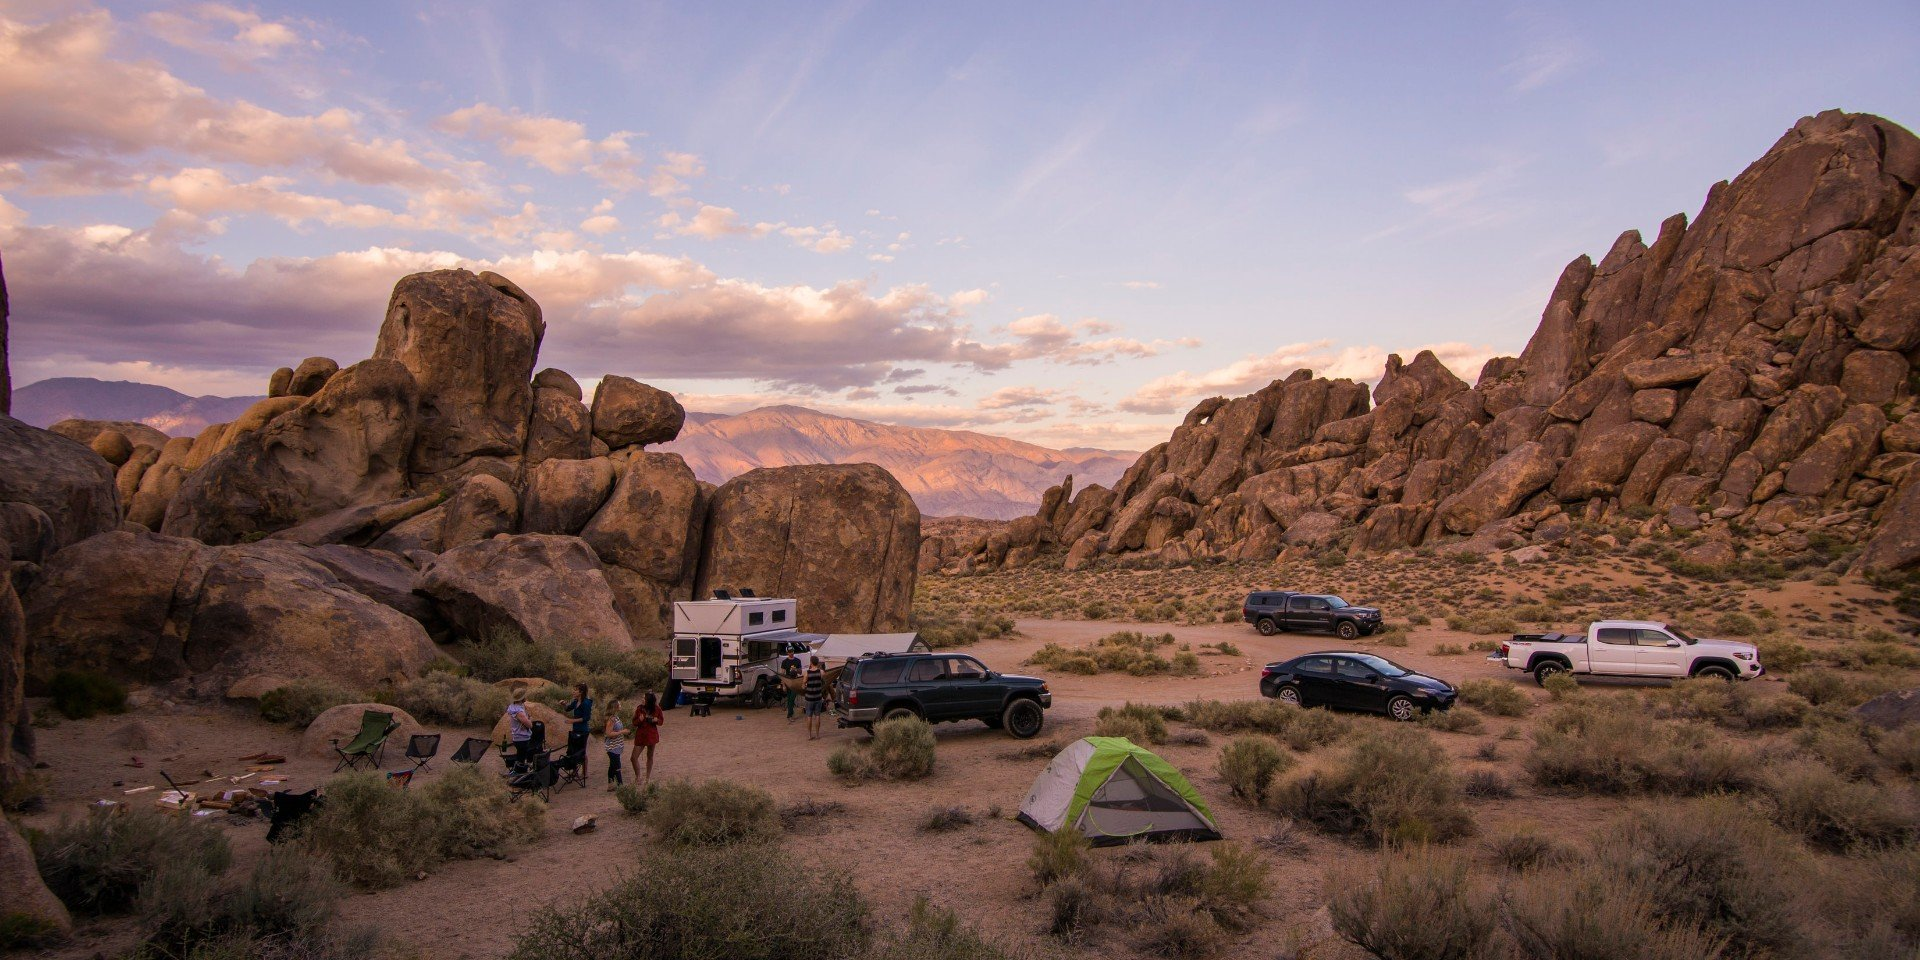 5 best tents for desert camping in 2020: stay comfy sleeping in the desert